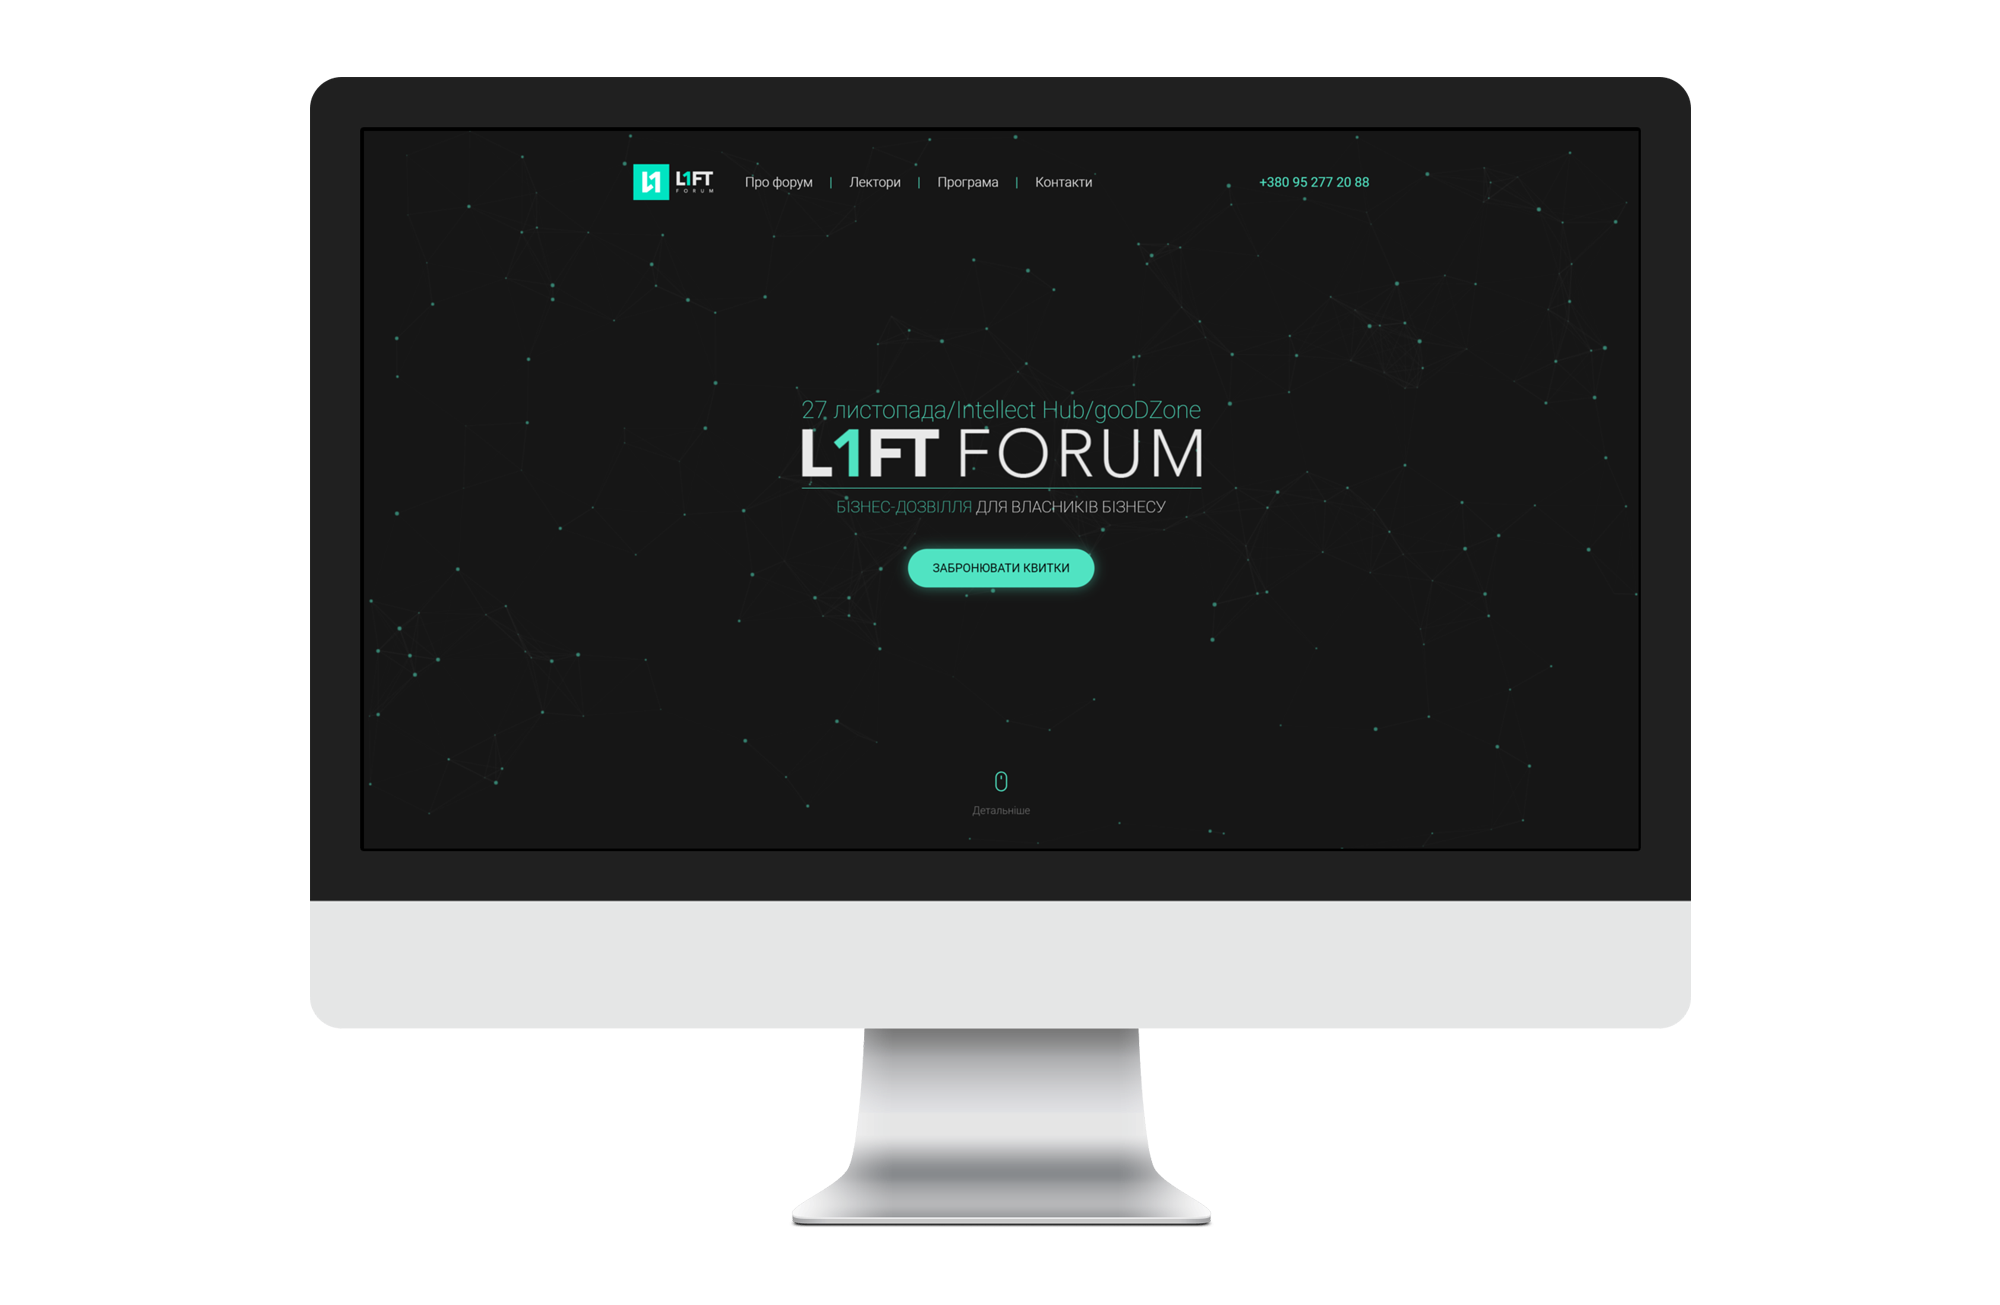 Розробка сайту LIFTForum – PC версія